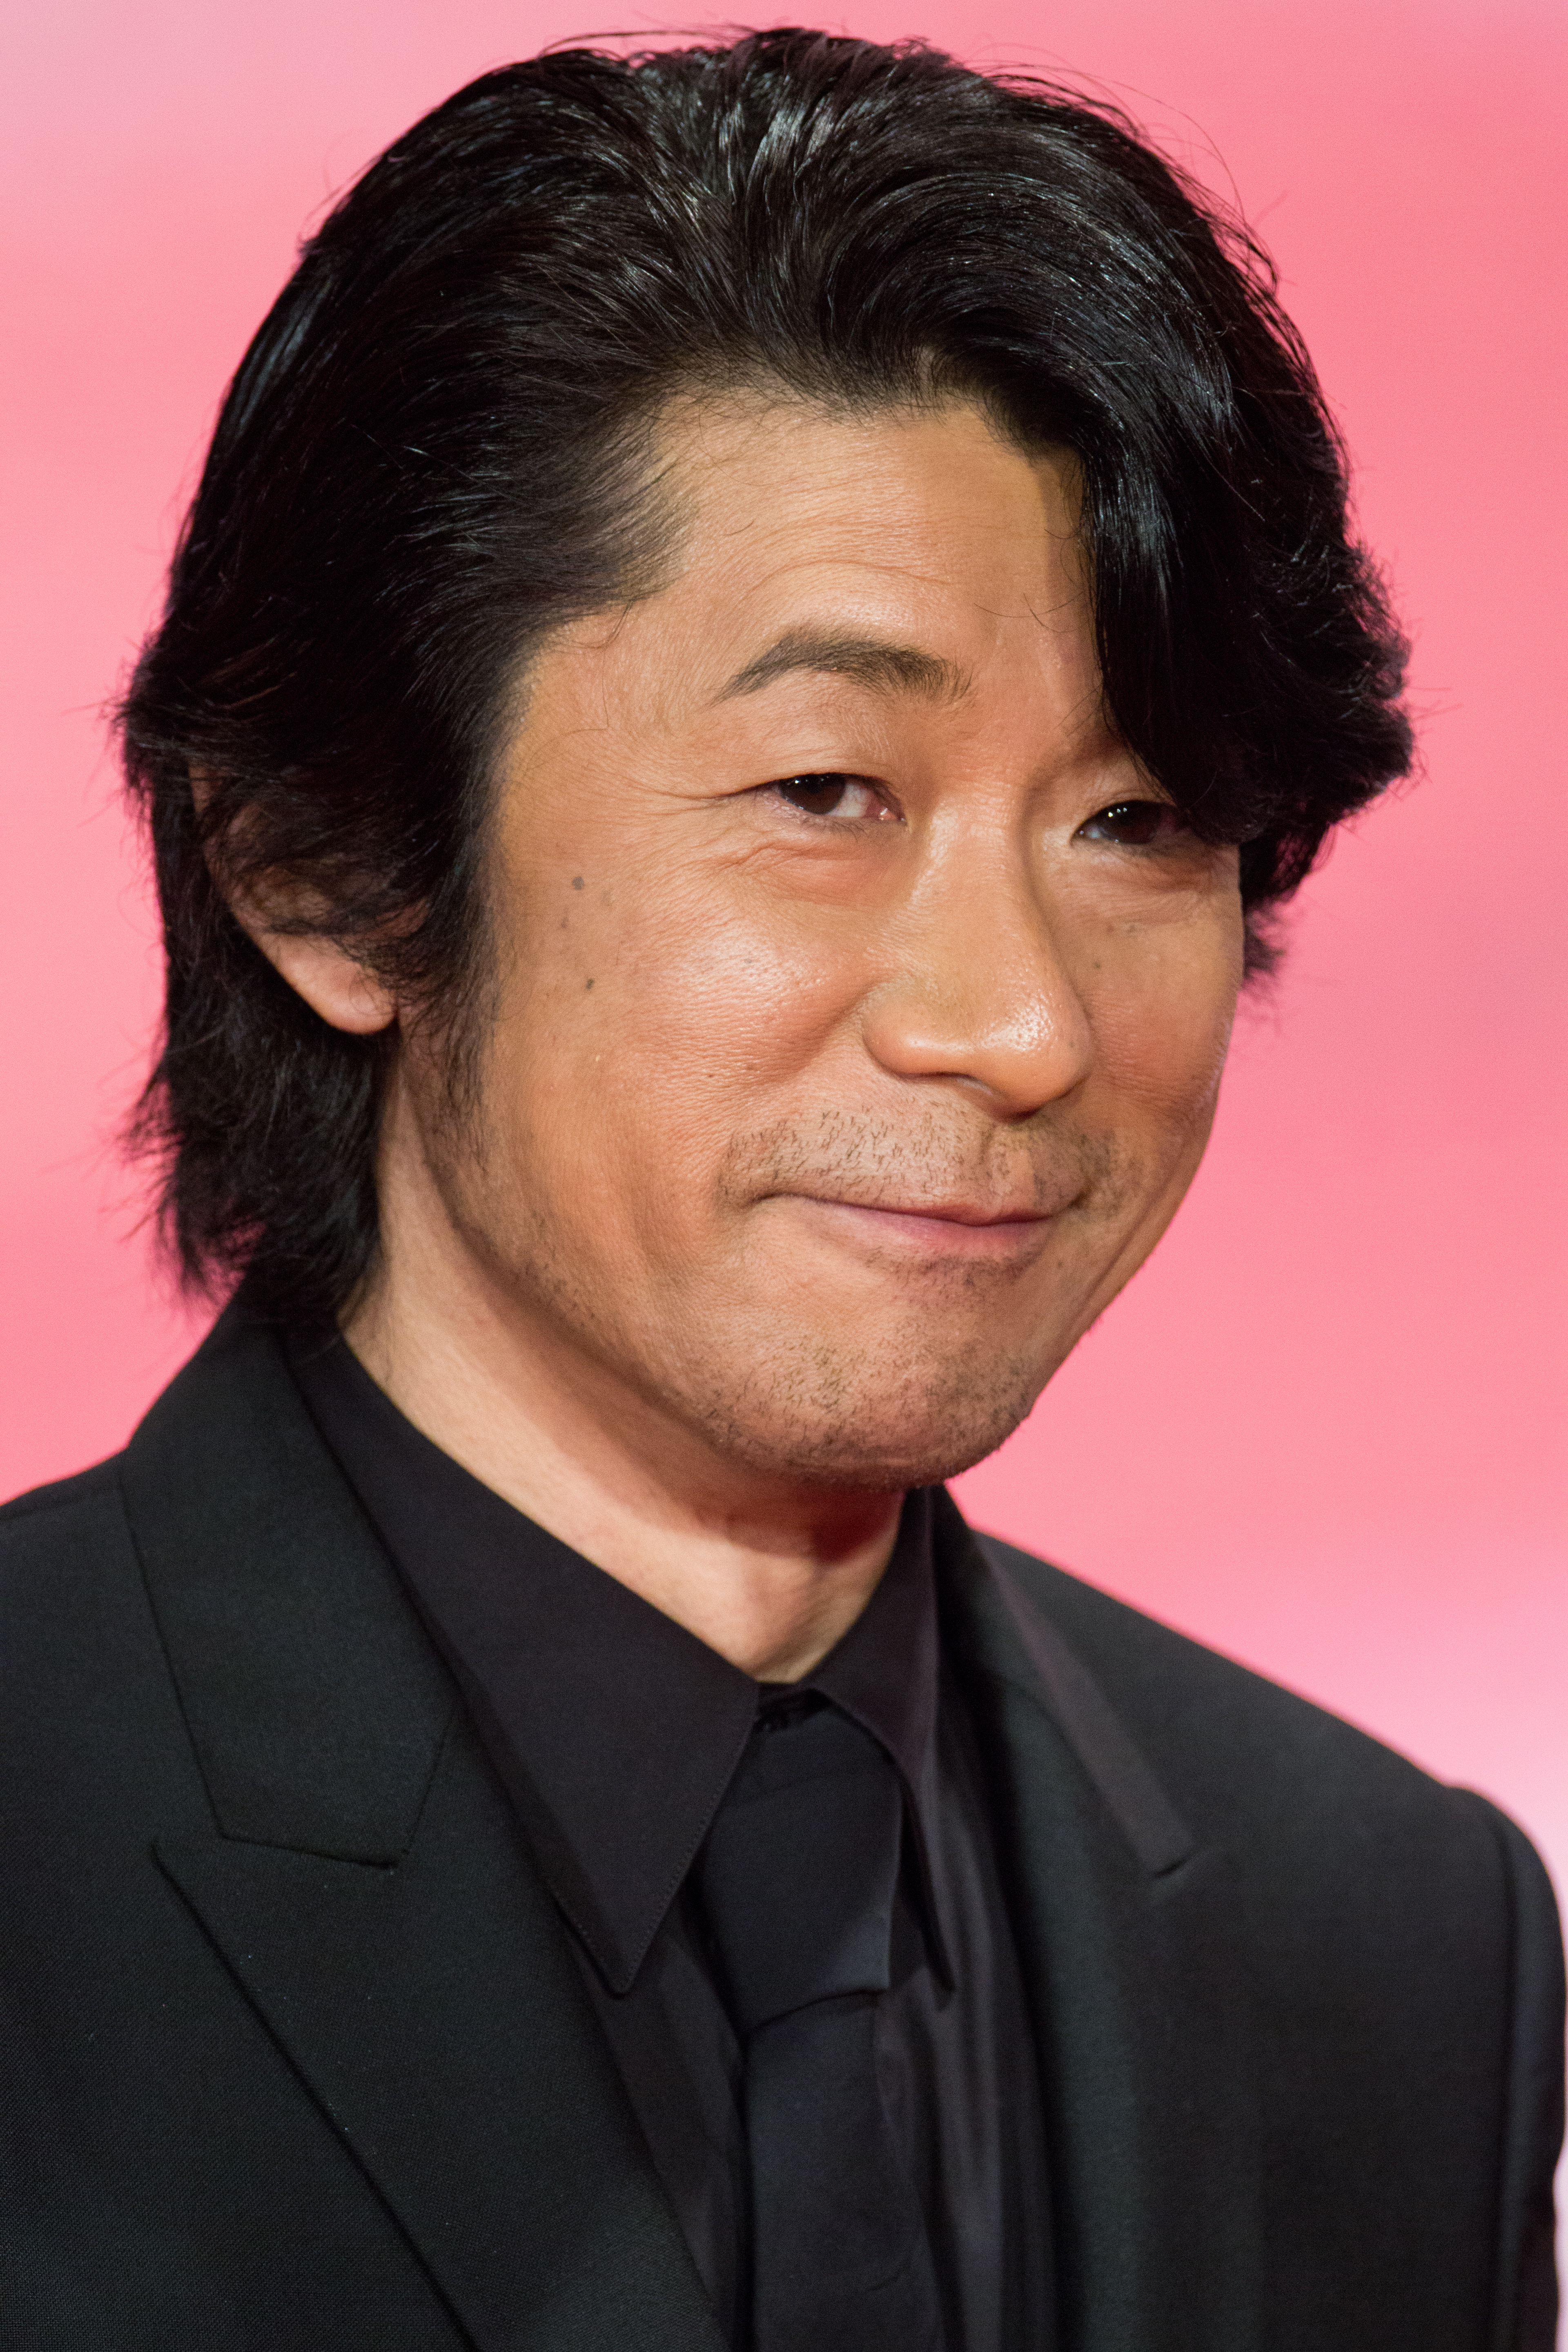 The 52-year old son of father (?) and mother(?) Masatoshi Nagase in 2018 photo. Masatoshi Nagase earned a  million dollar salary - leaving the net worth at 3 million in 2018